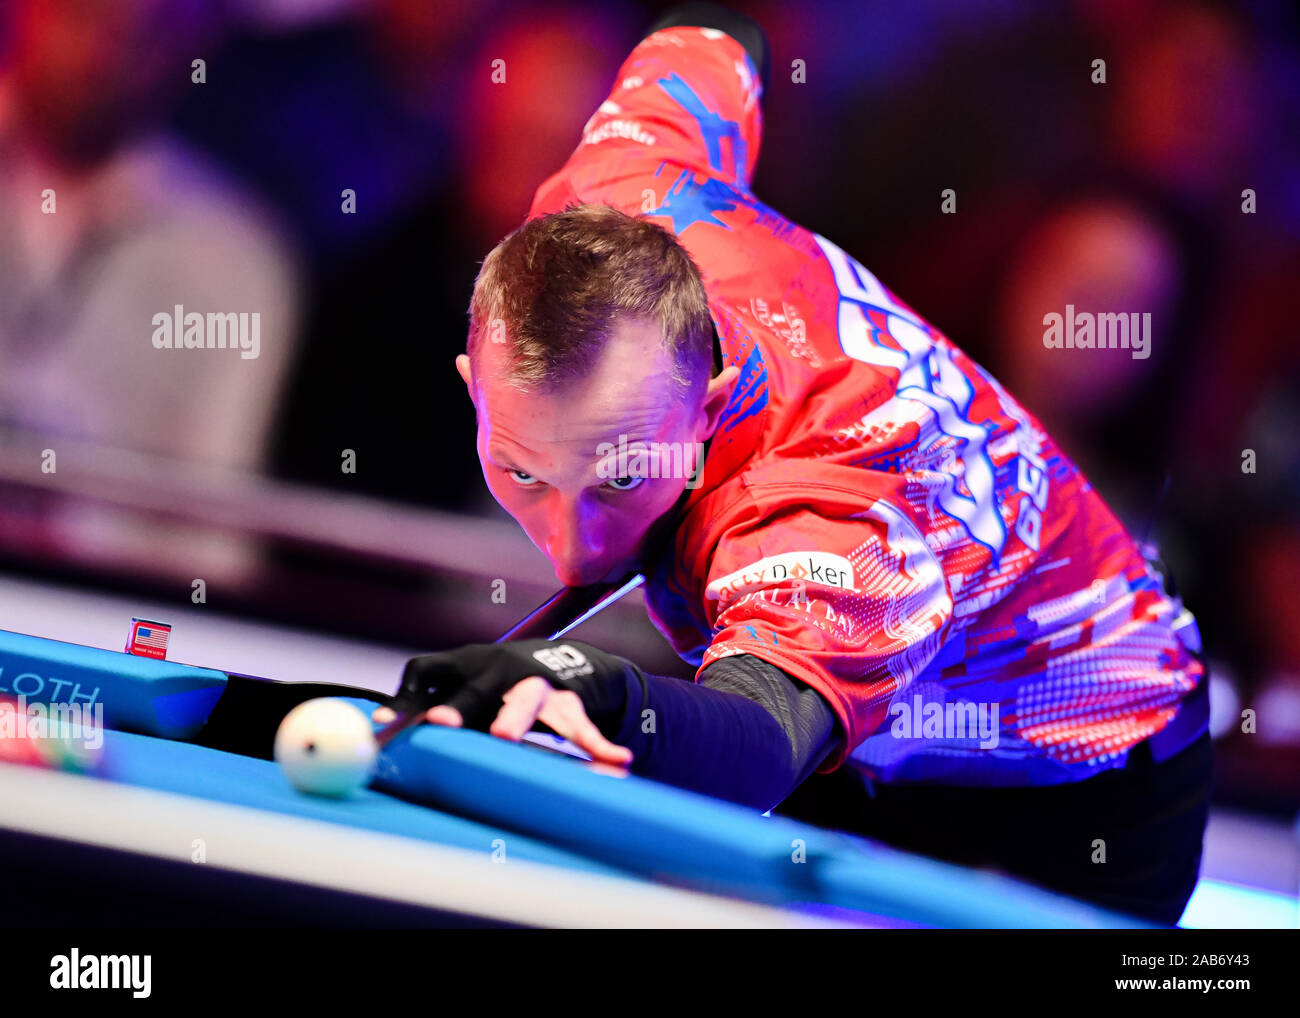 LAS VEGAS, USA. 26th Nov, 2019. Justin Bergman during Day 1 Session of MOSCONI CUP XXVI at Mandalay Bay on Tuesday, November 26, 2019 in LAS VEGAS, USA. Credit: Taka G Wu/Alamy Live News Stock Photo